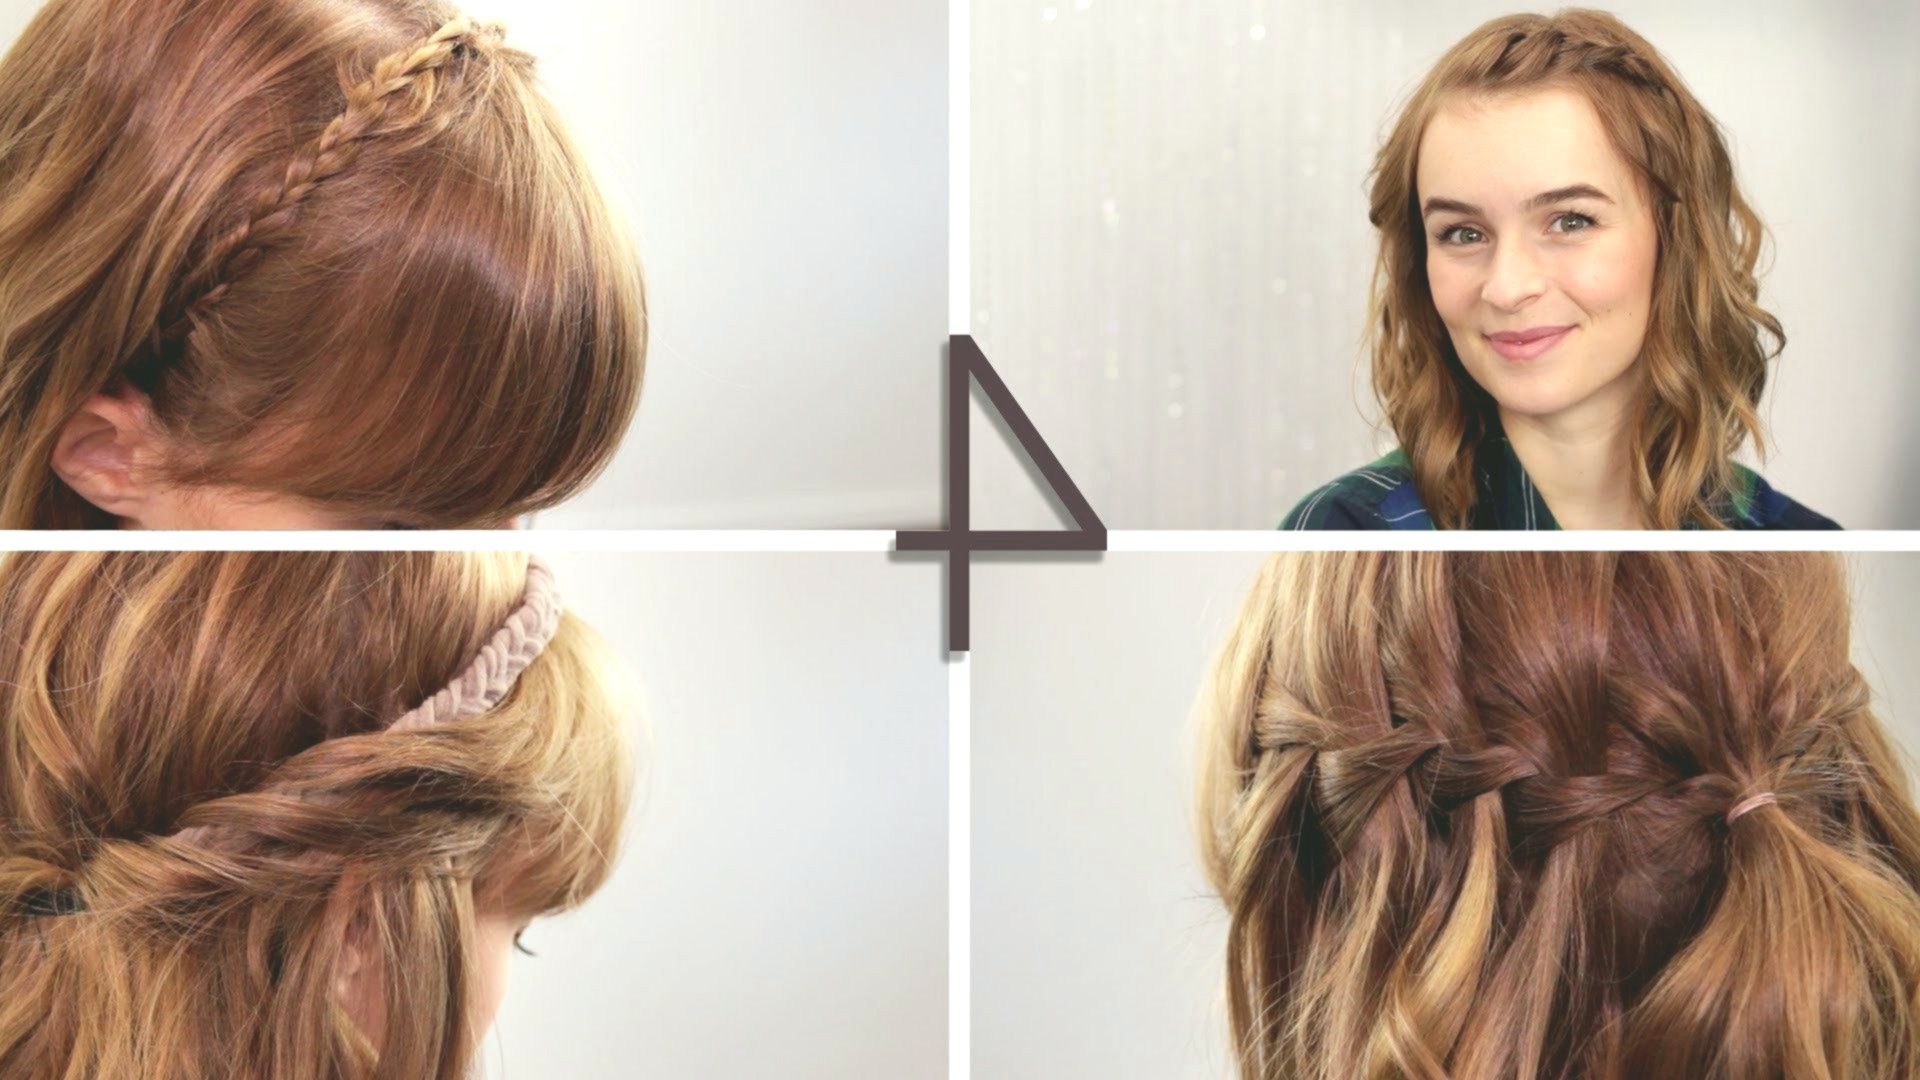 Lovely Beautiful Hairstyles For Short Hair Gallery Modern Beautiful Hairstyles For Short Hair Decor